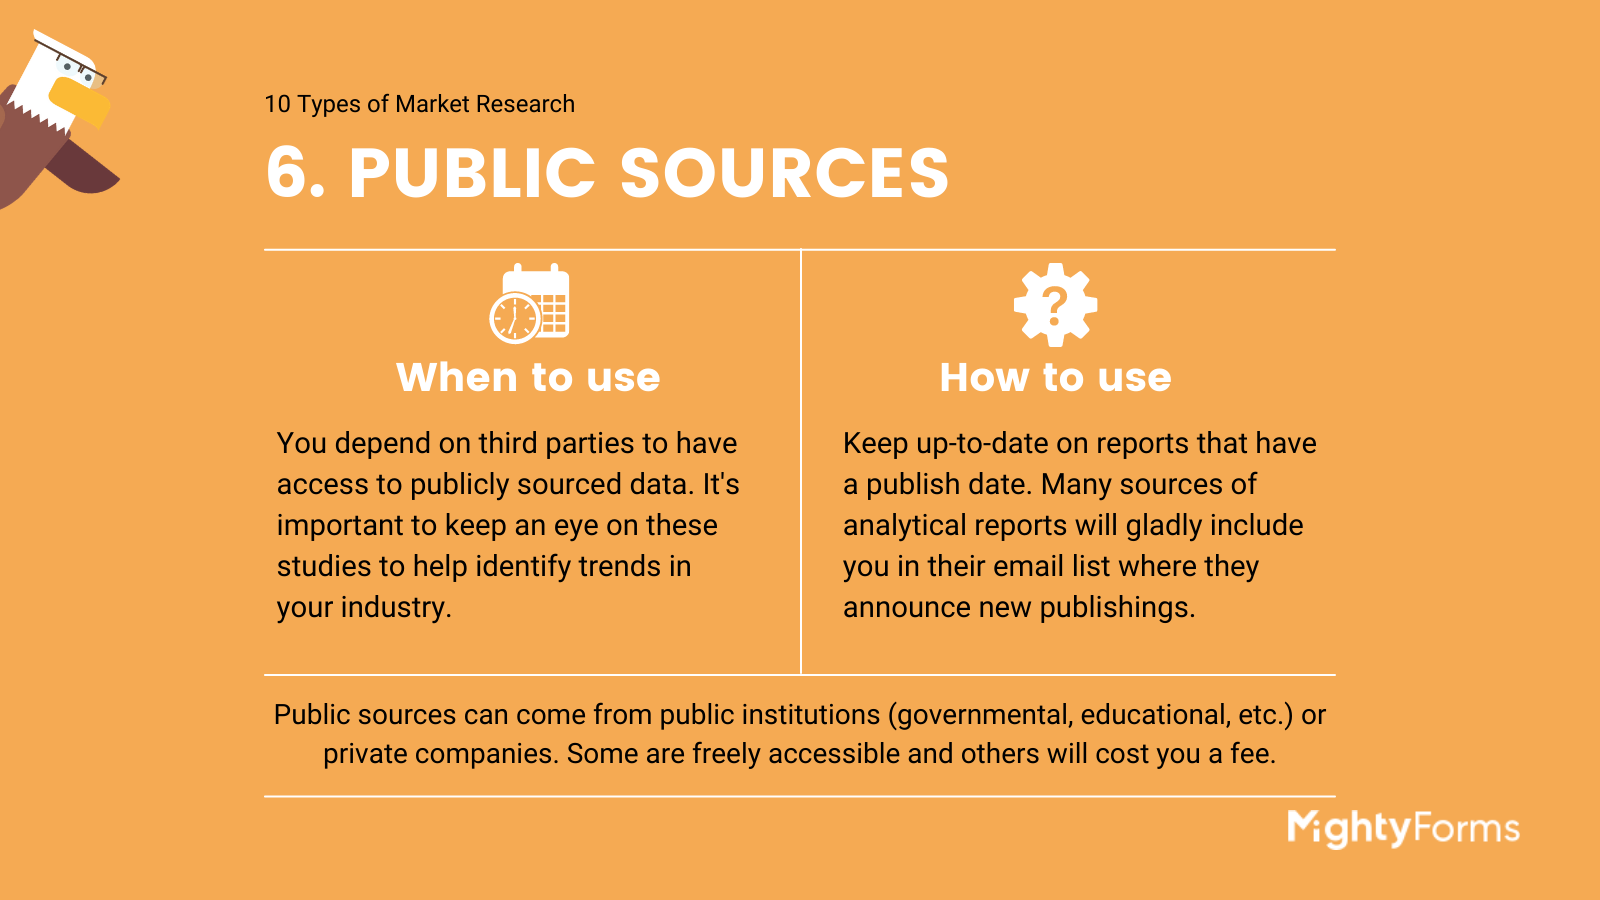 Types of Market Research - Public Sources - infographic_ MightyForms